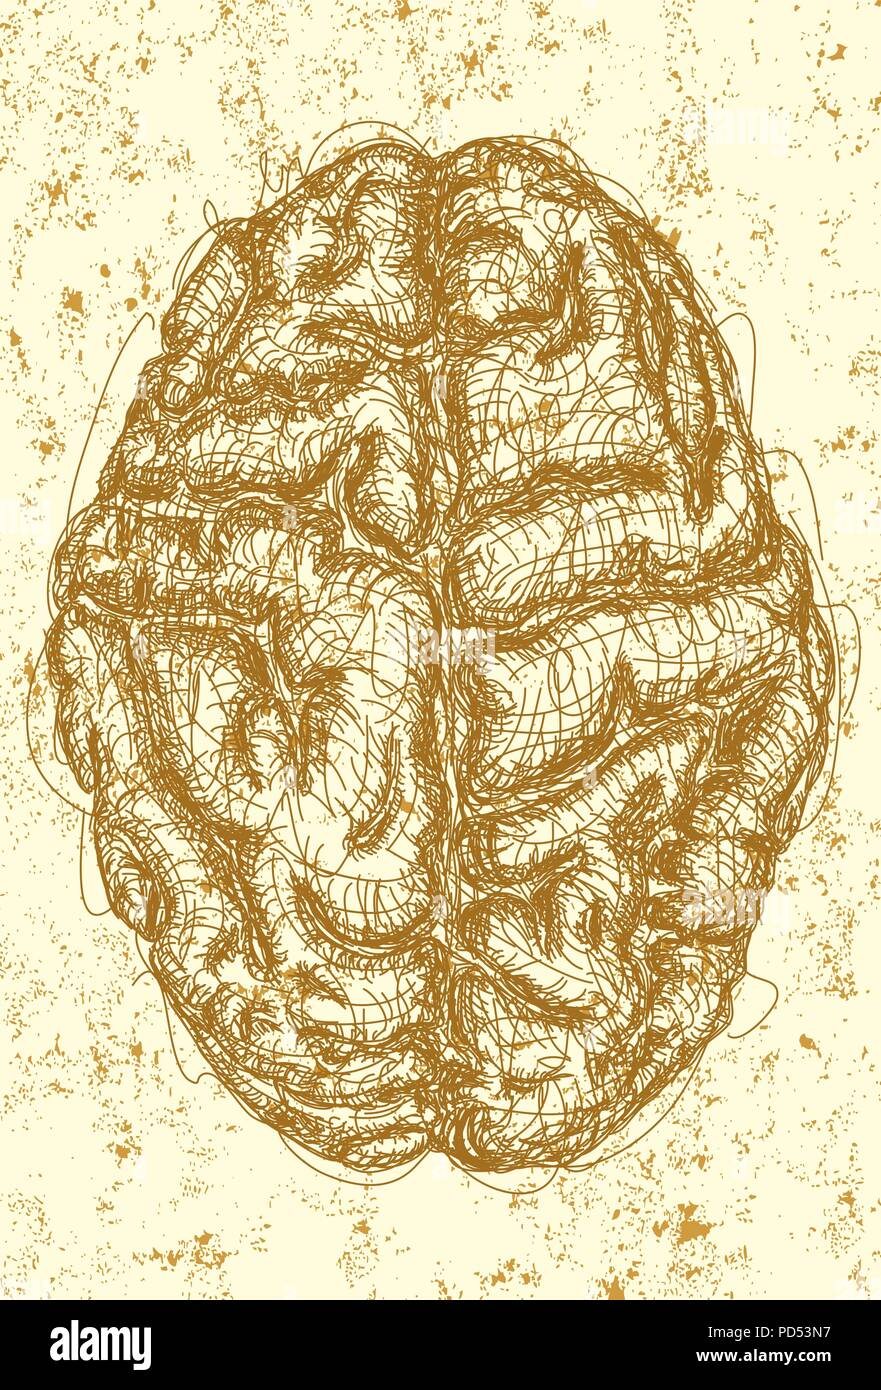 Brain . A sketch of the top view of a brain over an abstract background. - Stock Image